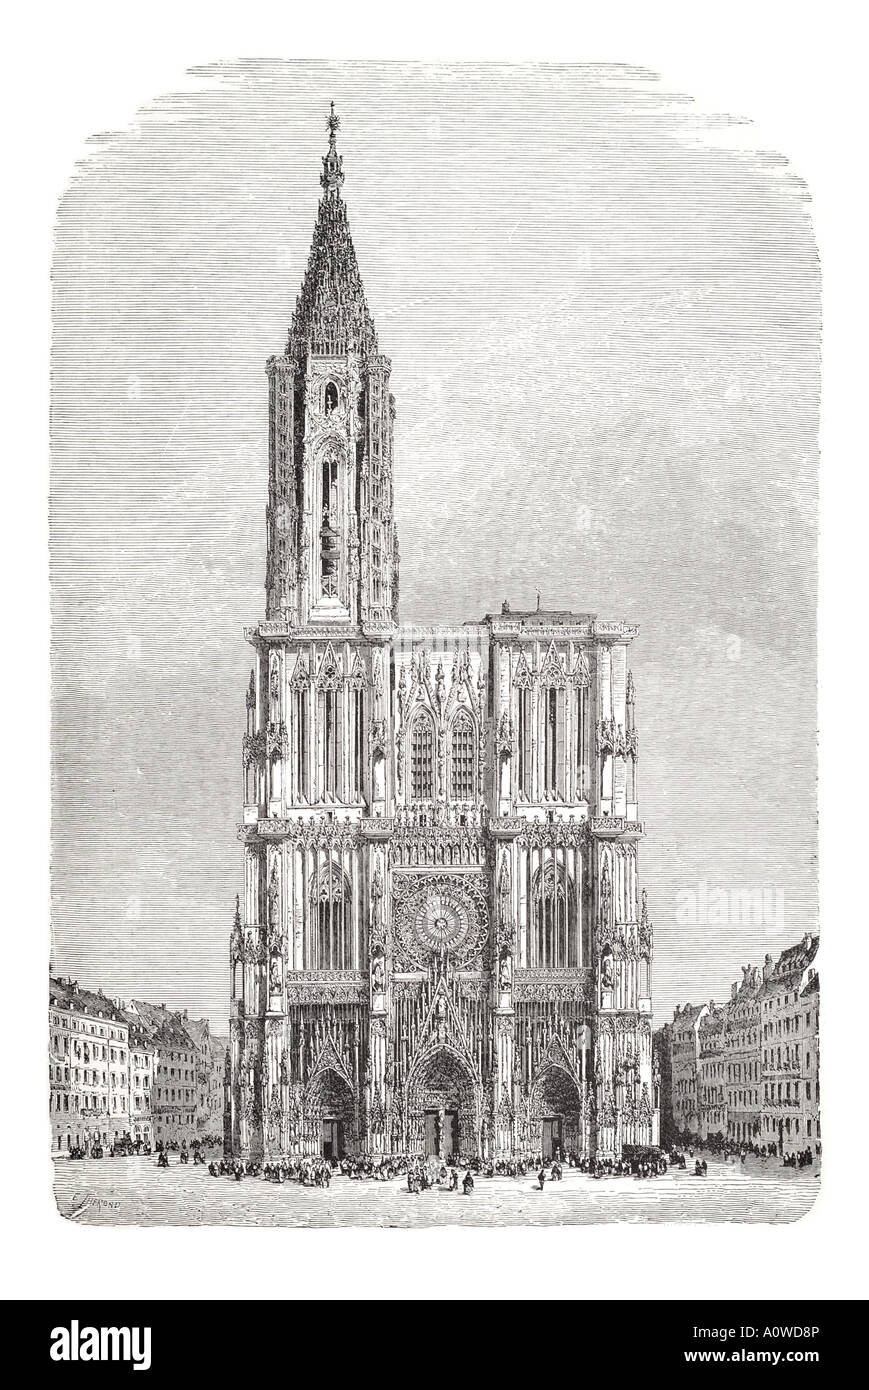 strasburg cathedral Square Our Lady Notre Dame Alsace France architecture stone tower spire Christian religion arch Stock Photo